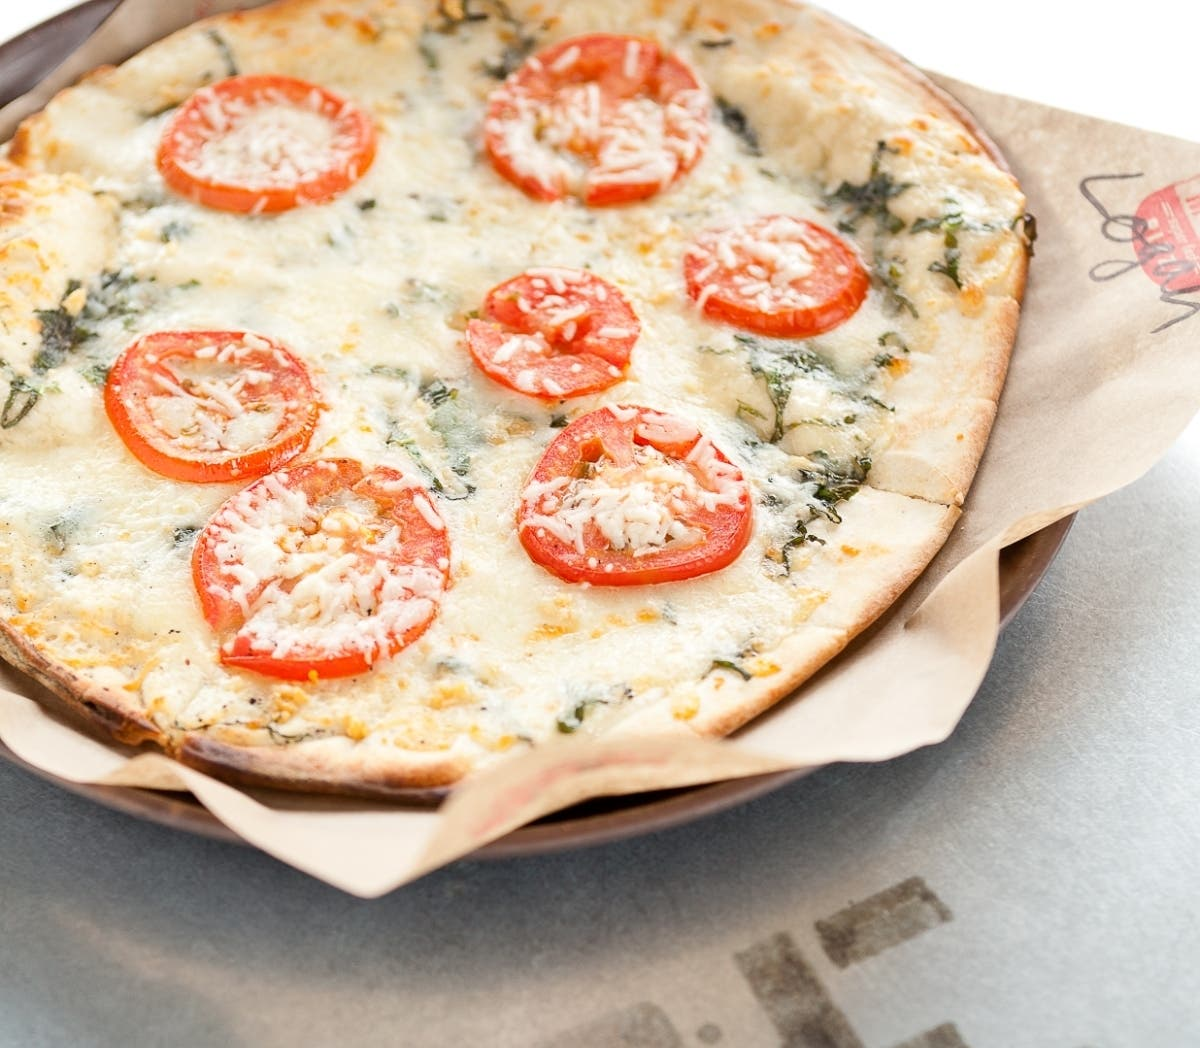 MOD Pizza Spreads MODNESS to Hungry Families this Holiday ...